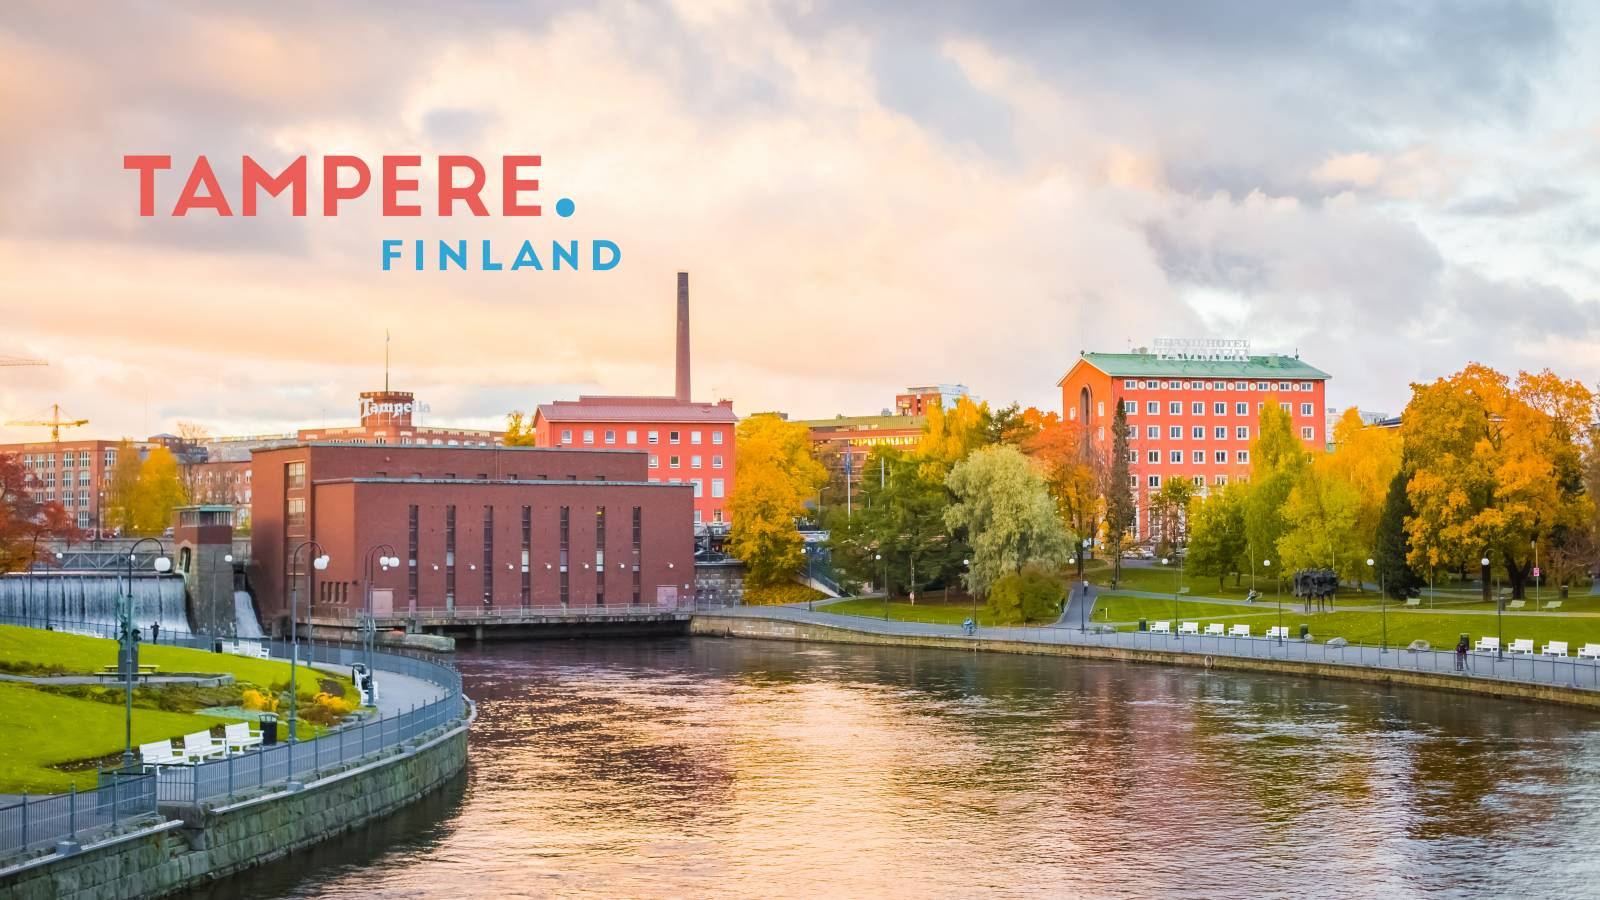 Tampere picture